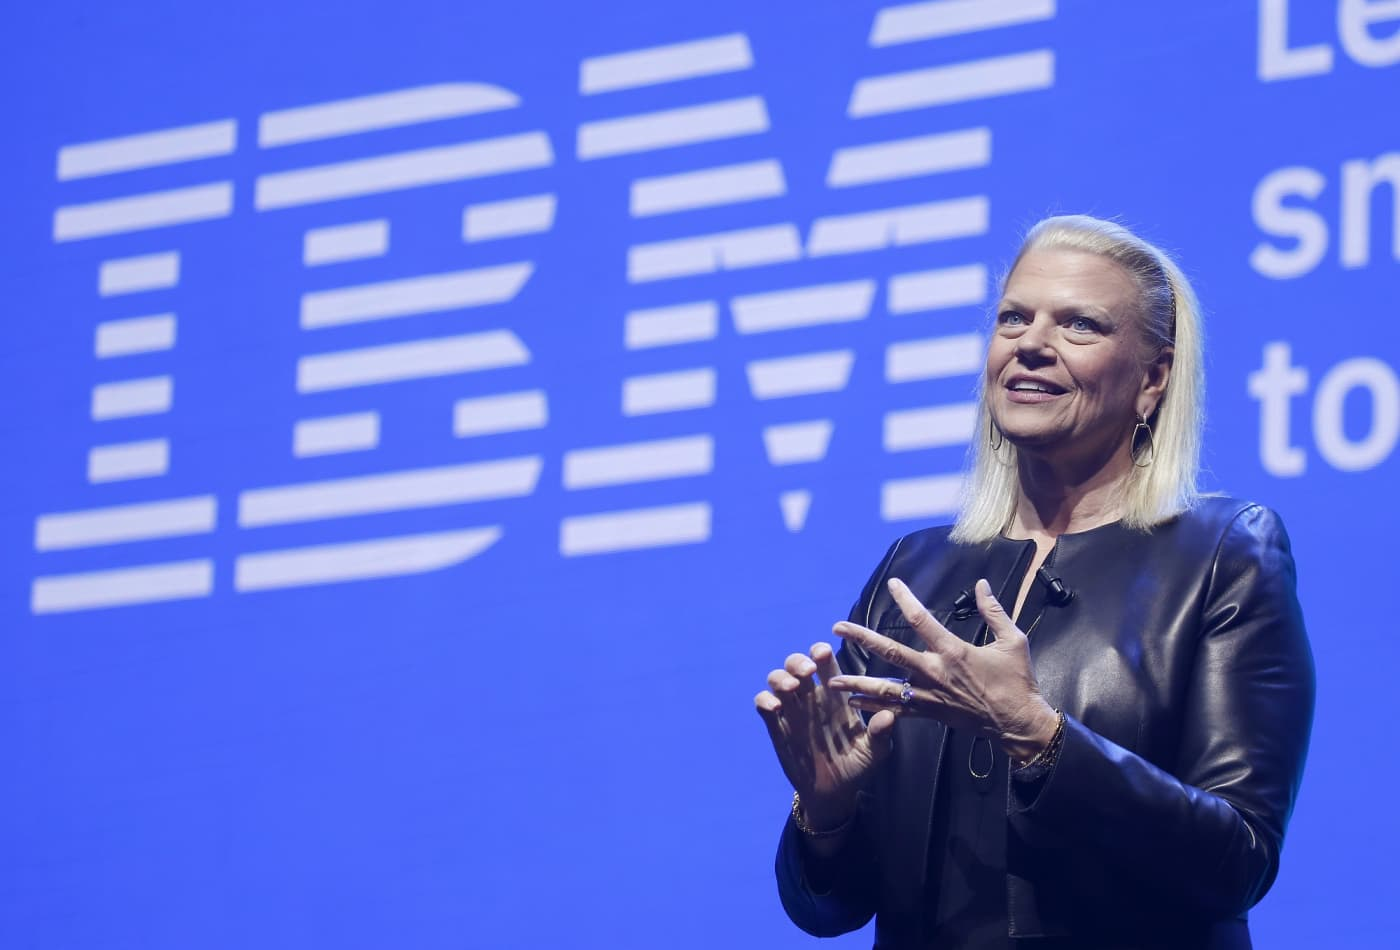 Former IBM CEO says employers should stop hiring based on college degrees and focus on this instead